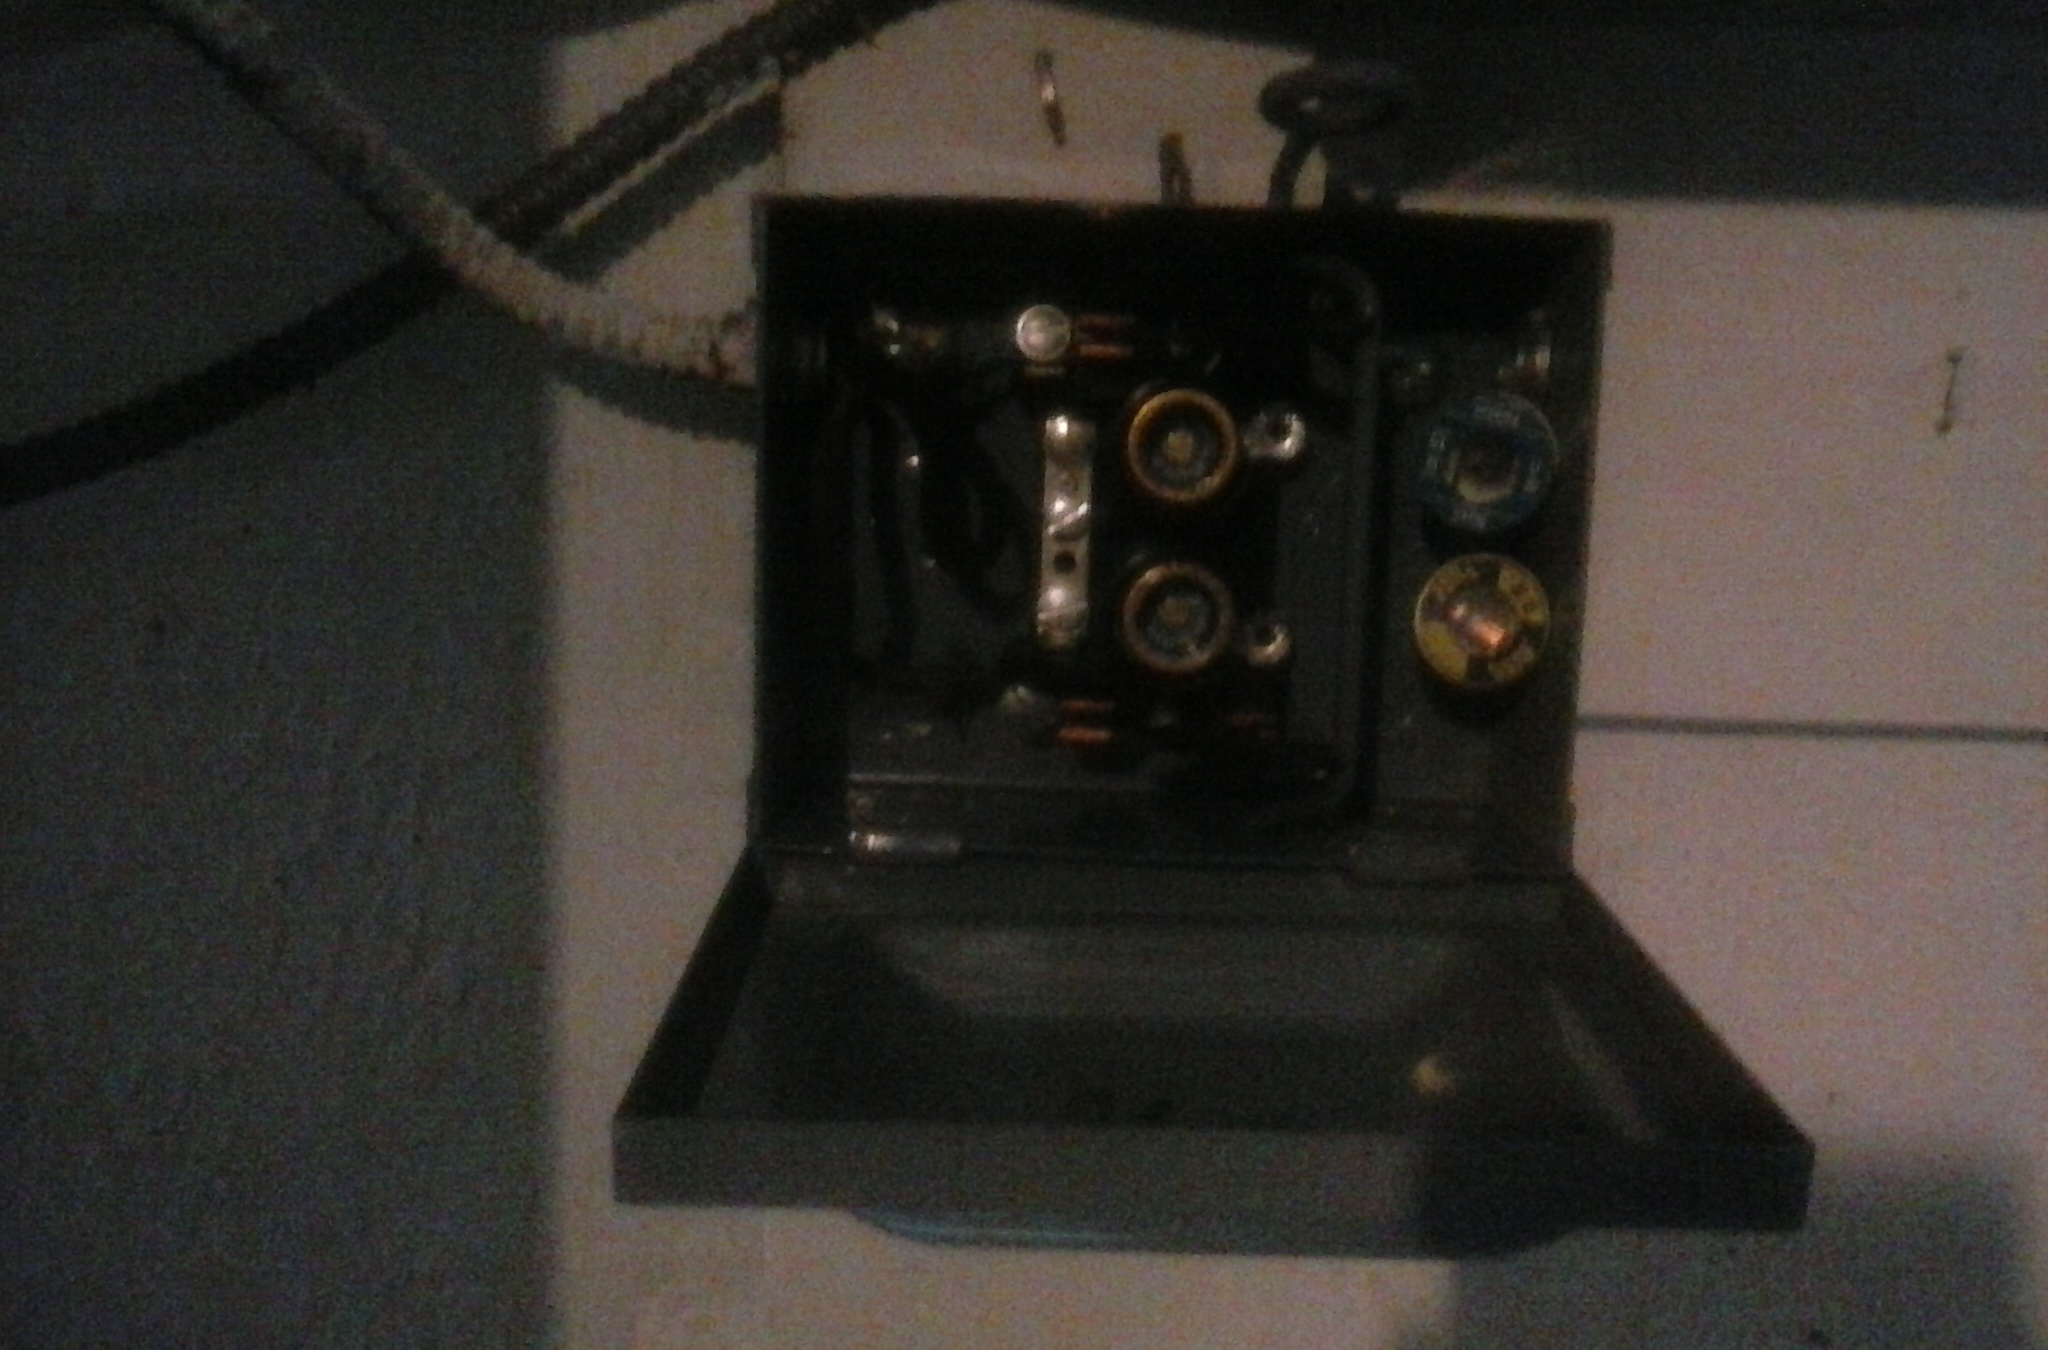 Strange Wiring In House Water Heater Phones Install Lights Old Small Fuse Box